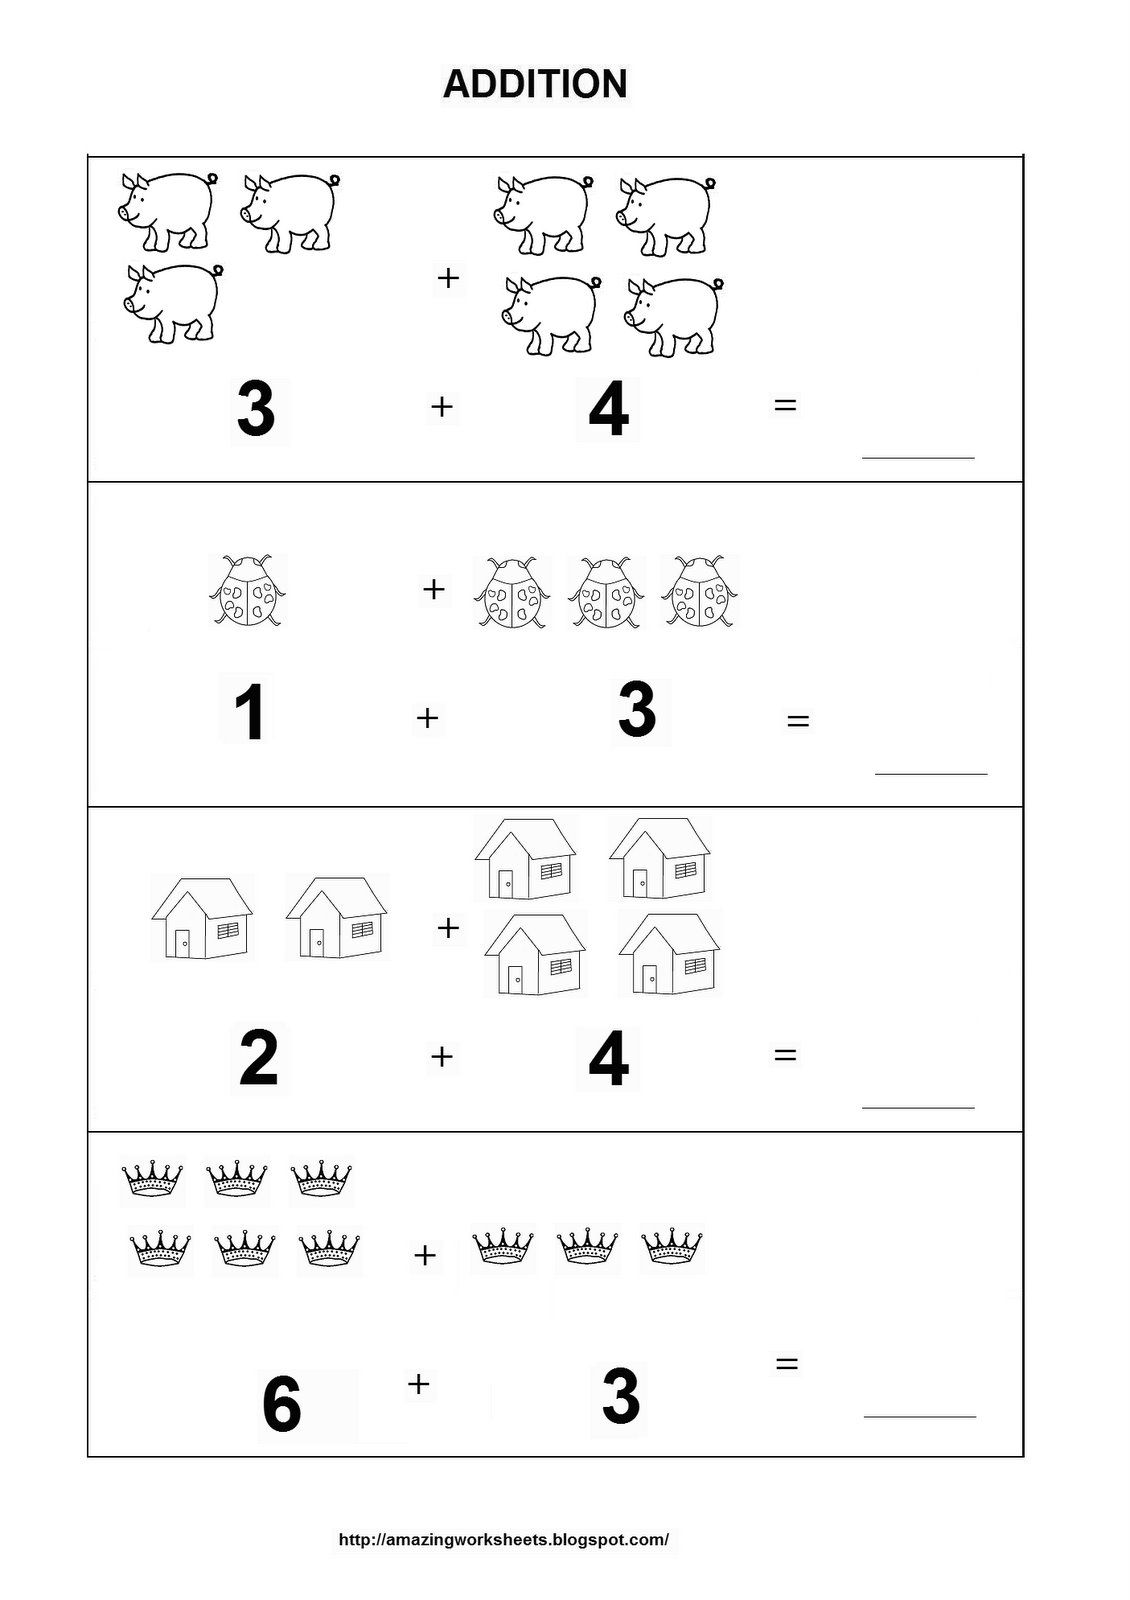 Addition Worksheets For Kindergarten With Pictures Scalien – Kindergarten Addition Worksheets Free